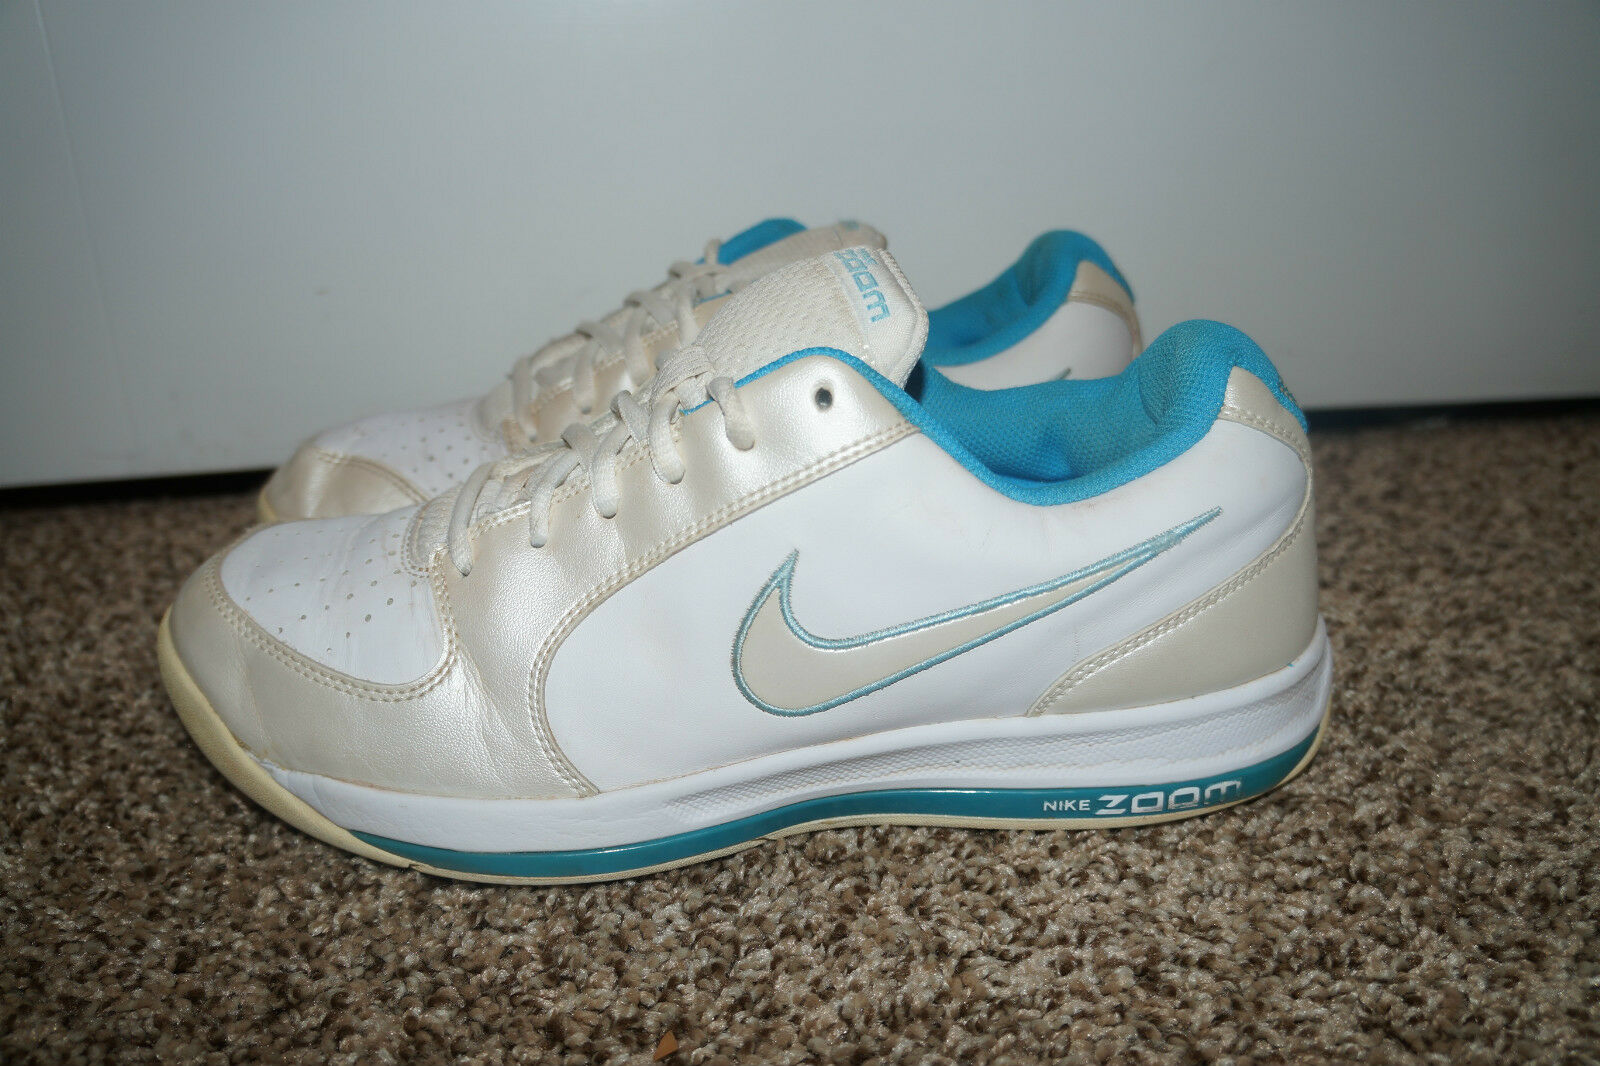 NIKE Zoom Womens White Shoes Sneakers Blue Size 9.5 LADIES NDR Running Walking @